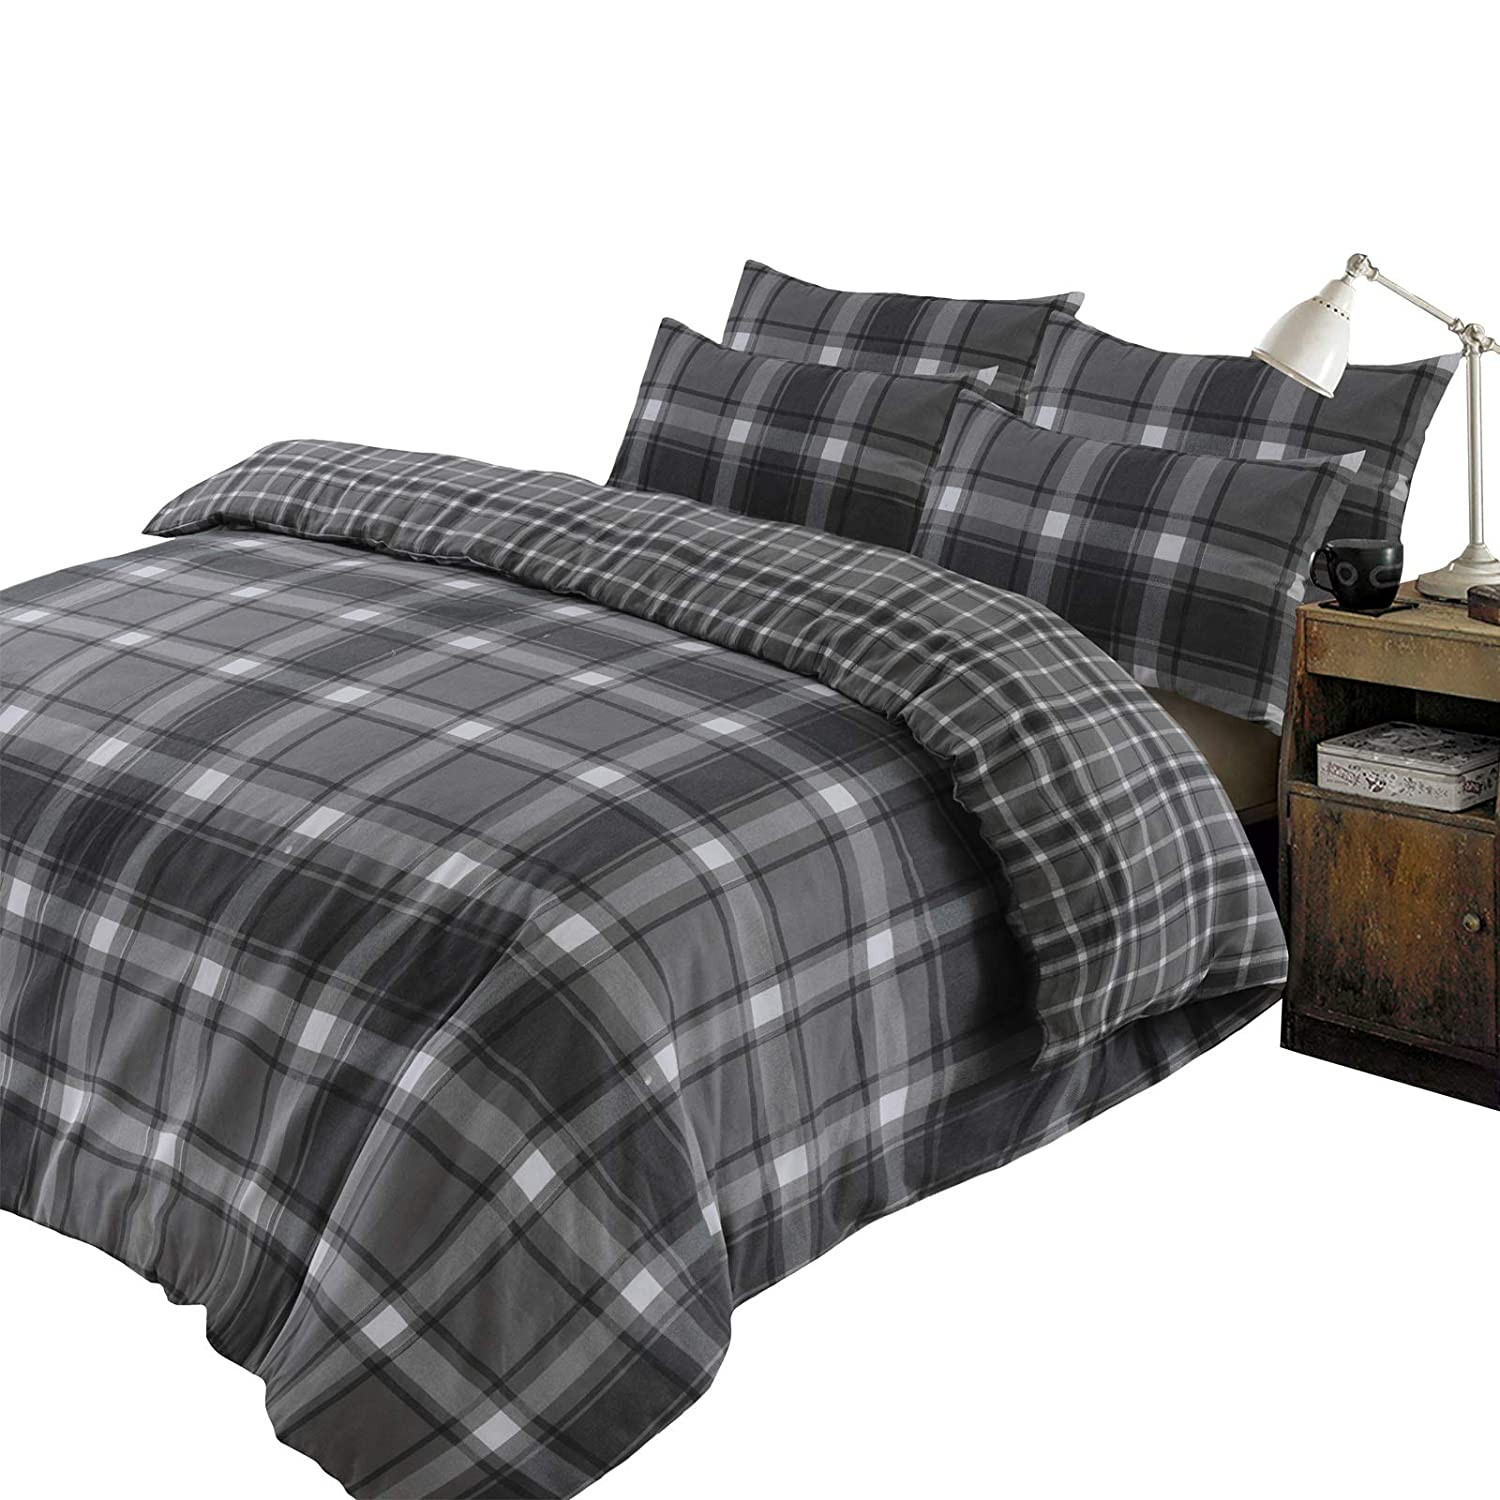 Tartan Flannelette 100/% Brushed Cotton Duvet Cover Bedding Set With Pillowcases